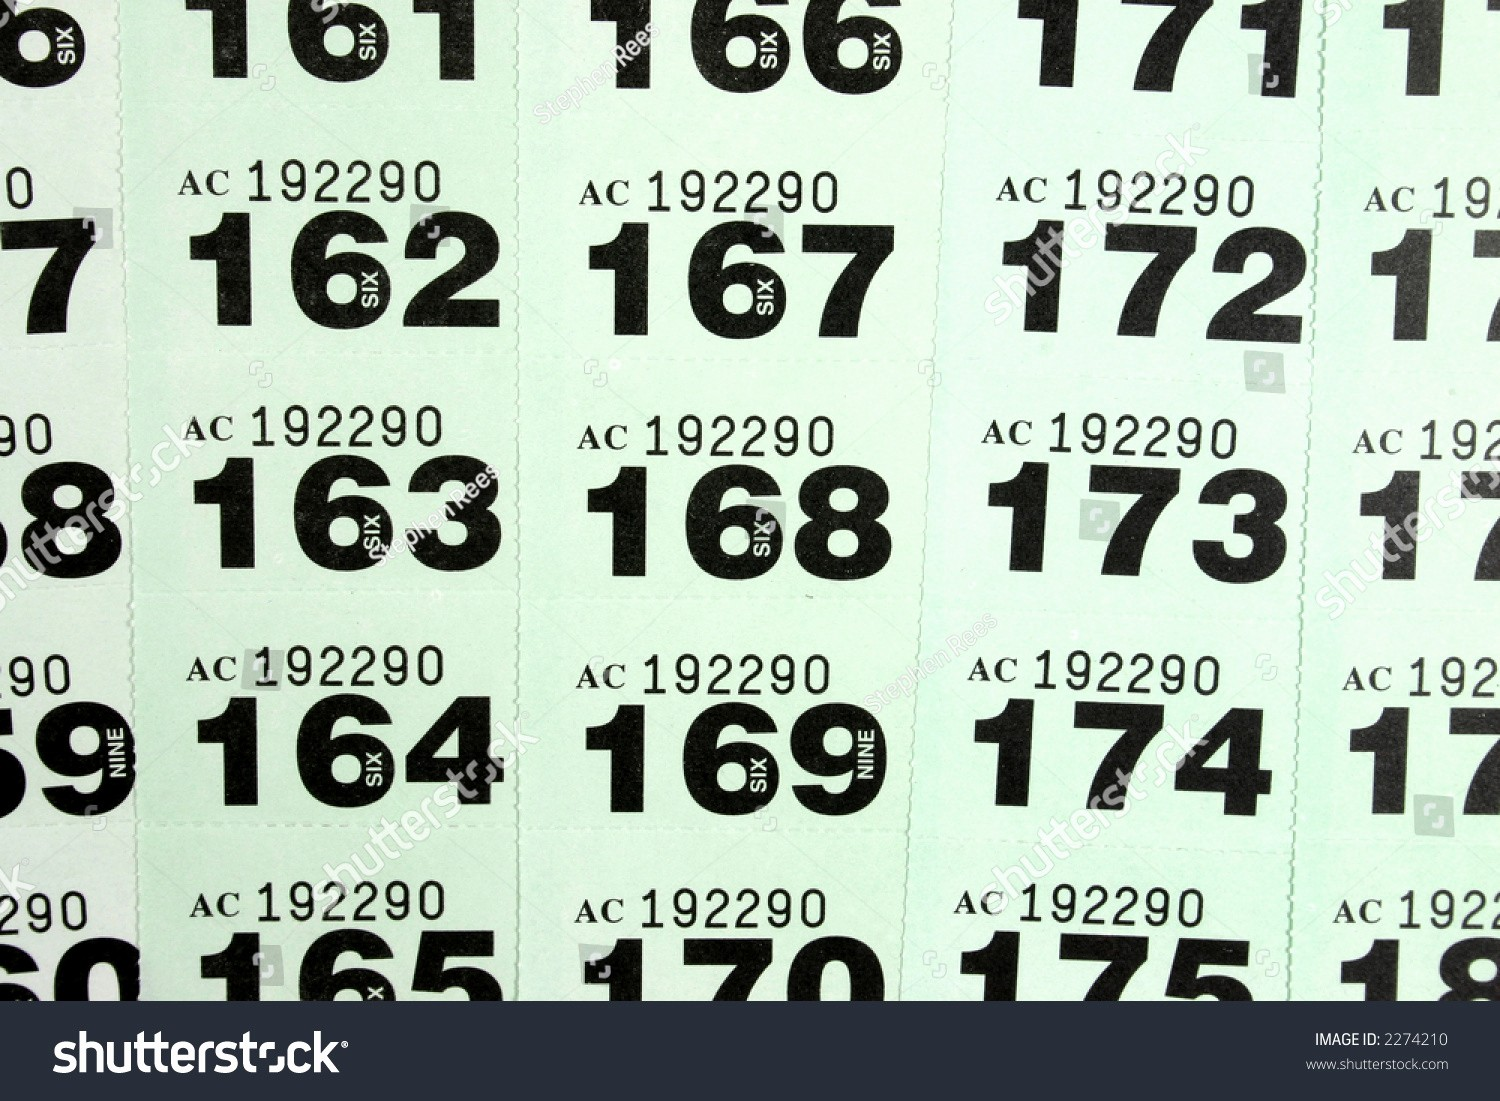 Template for Tickets with Numbers Lovely Raffle Ticket Templates Excel Template 2221